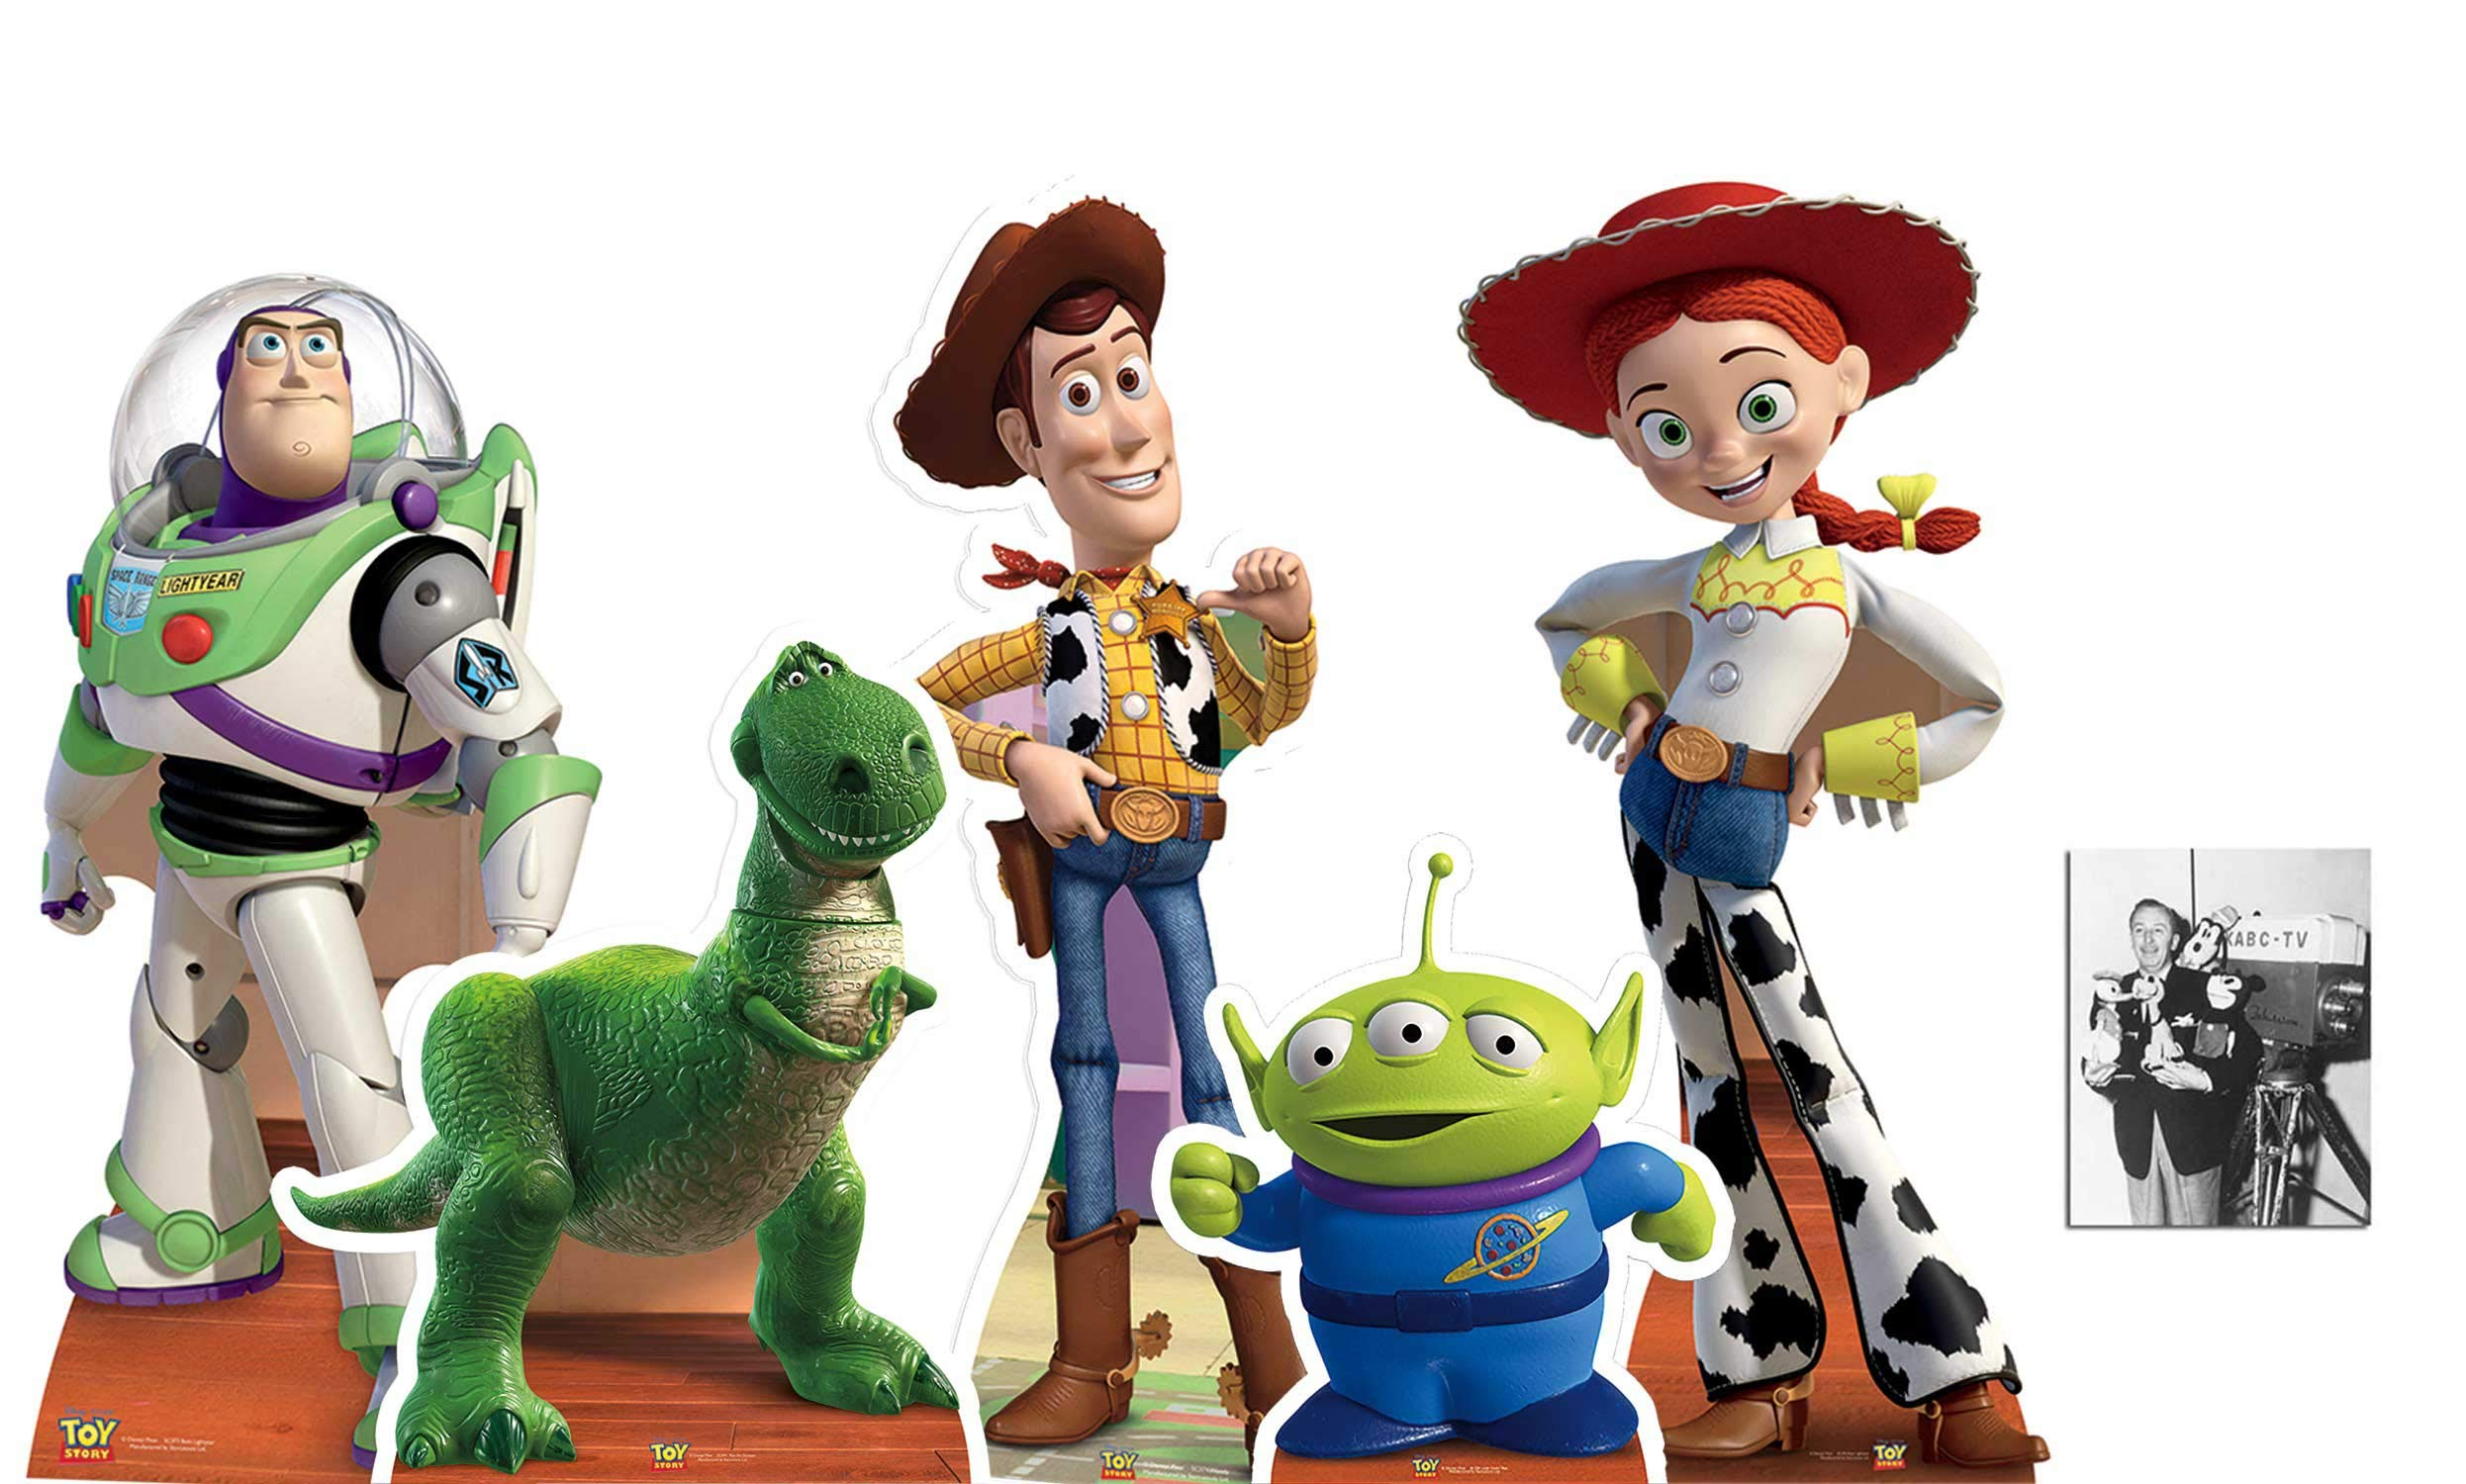 Toy Story Official Cardboard Cutouts/Standups Collection of 5 with Woody, Buzz, Rex, Jessie and Little Green Man. Fan Pack, Includes 8x10 Star Photo